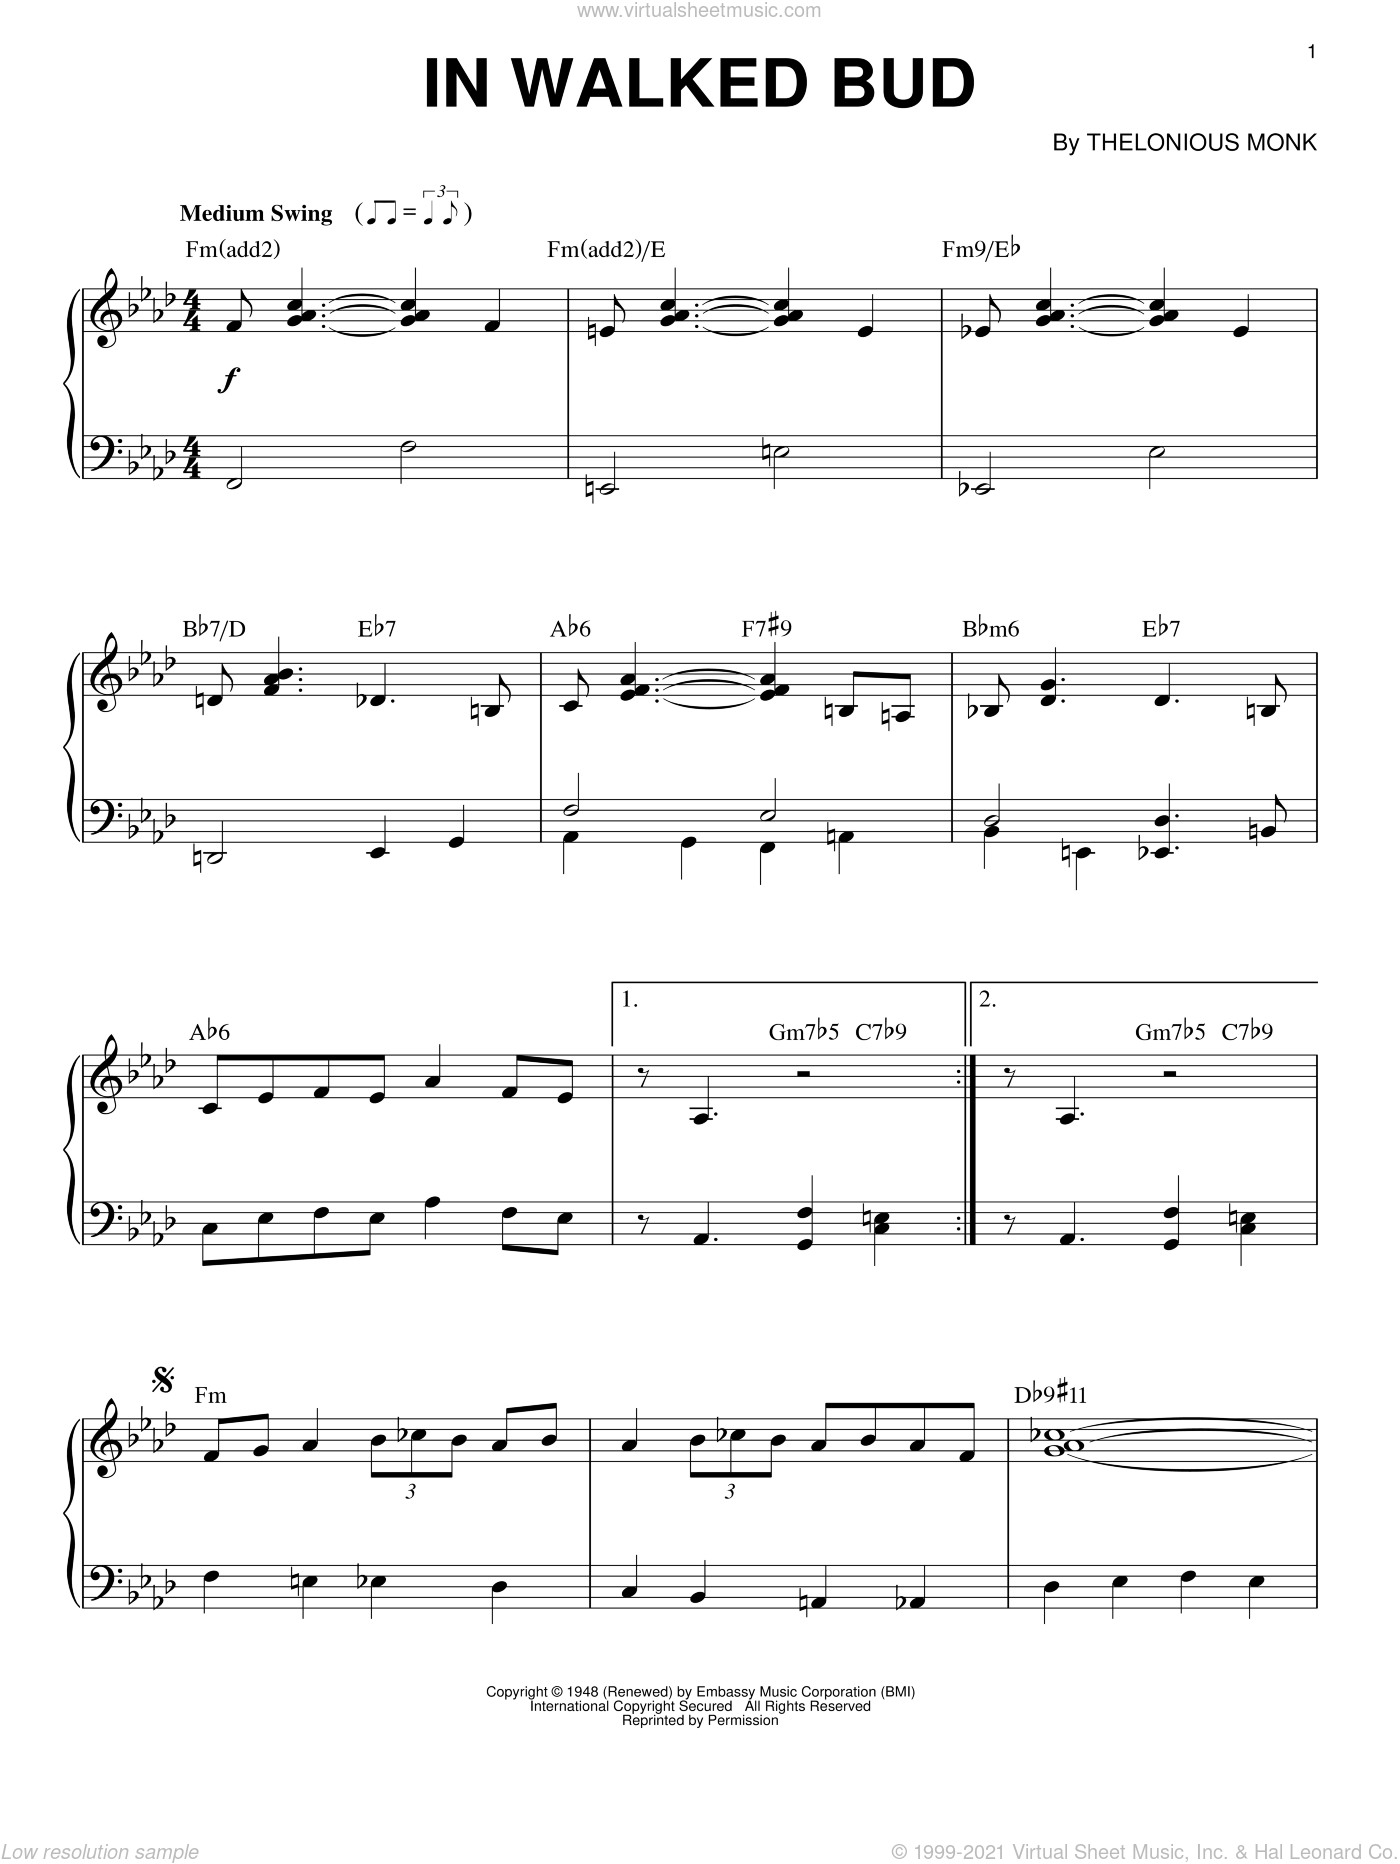 In Walked Bud sheet music for piano solo by Thelonious Monk, intermediate skill level